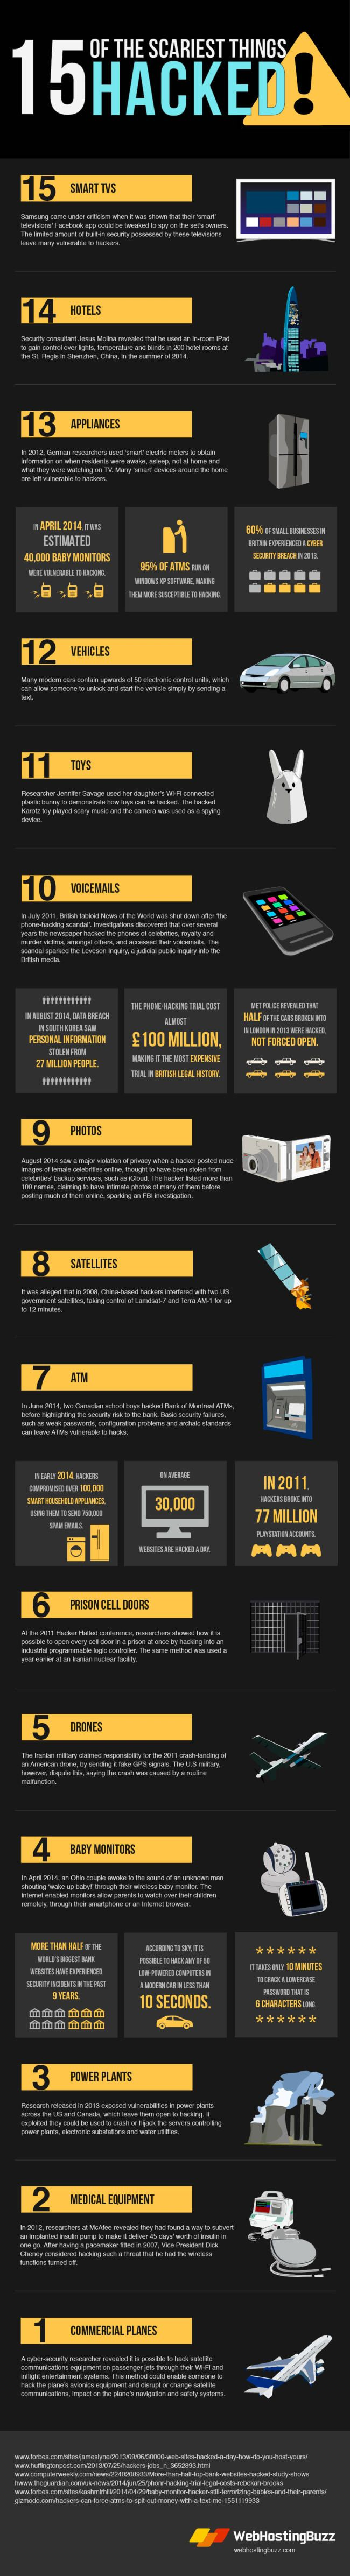 The 15 most hackable and terrifying things (infographic) - Enterprise - | siliconrepublic.com - Ireland's Technology News Service